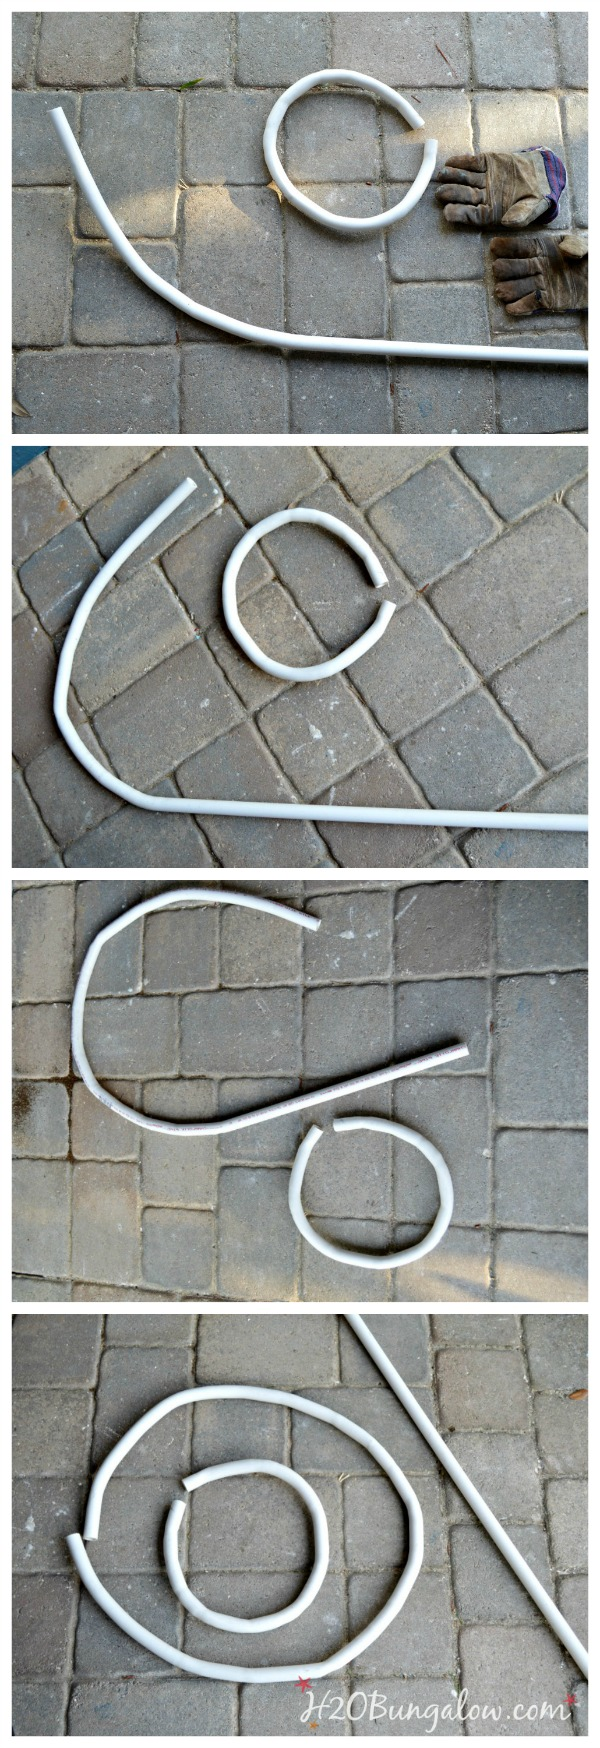 Bending-PVC-Pipe-with-a-HomeRight-heagun-H2OBungalow